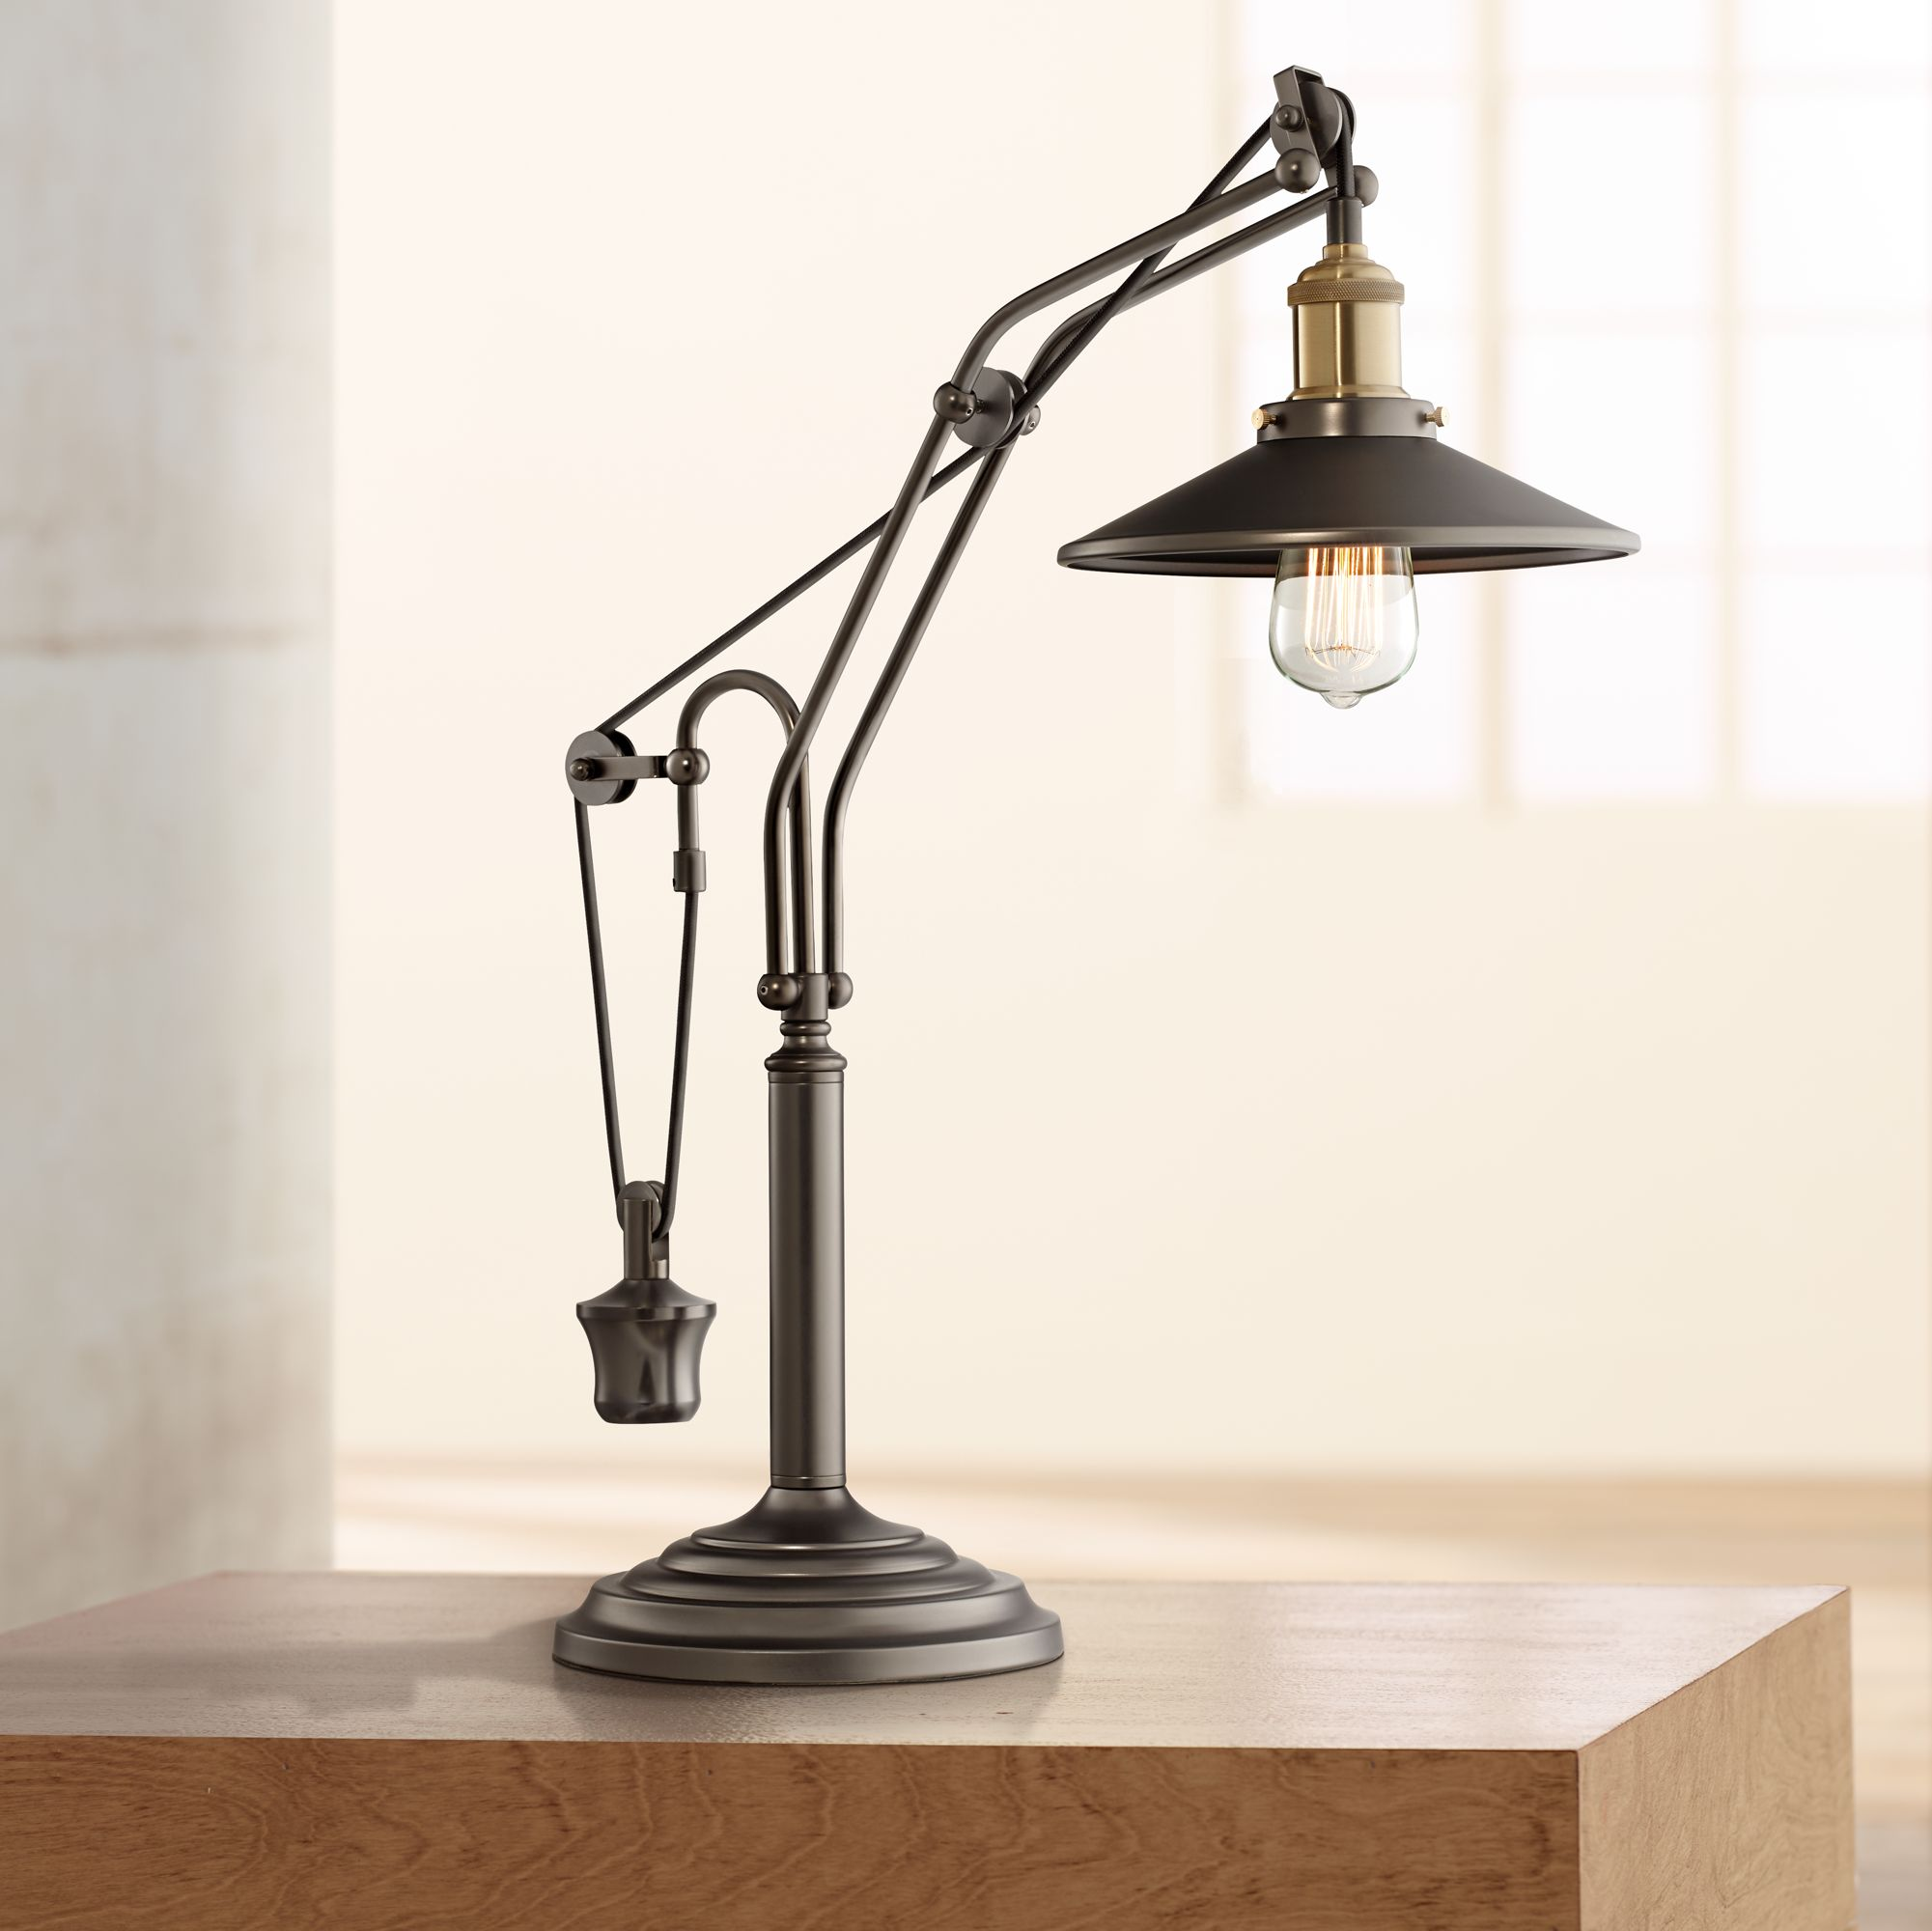 bronze rustic lodge desk lamps lamps plus rh lampsplus com antique bronze desk lamp bronze pharmacy desk lamp